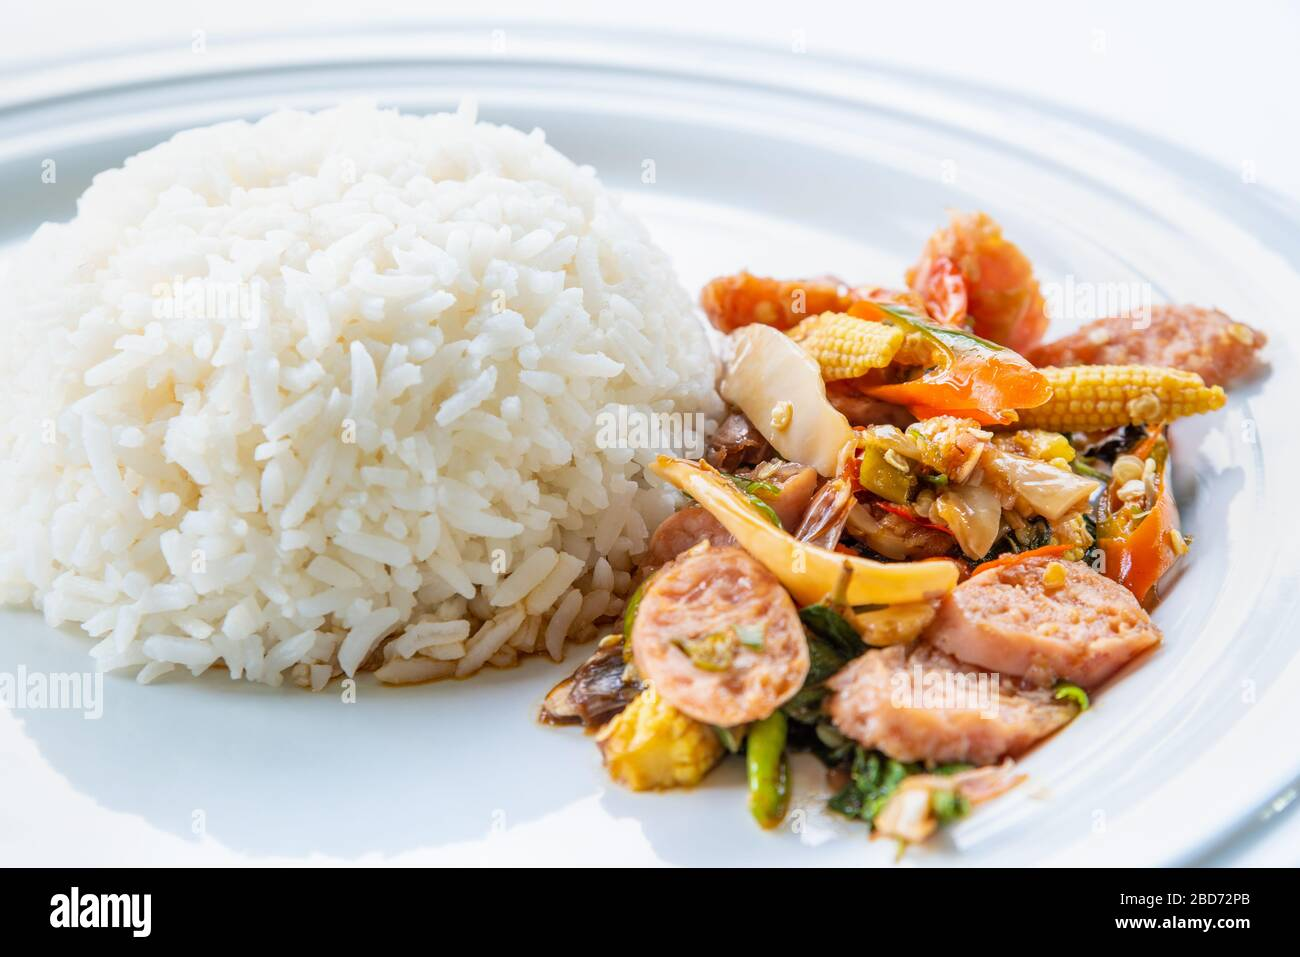 Asian spicy hot food or Thai food, closeup side view Thai sour pork or Nham fried with pepper and mixed vegetable with white cooked rice on round whit Stock Photo